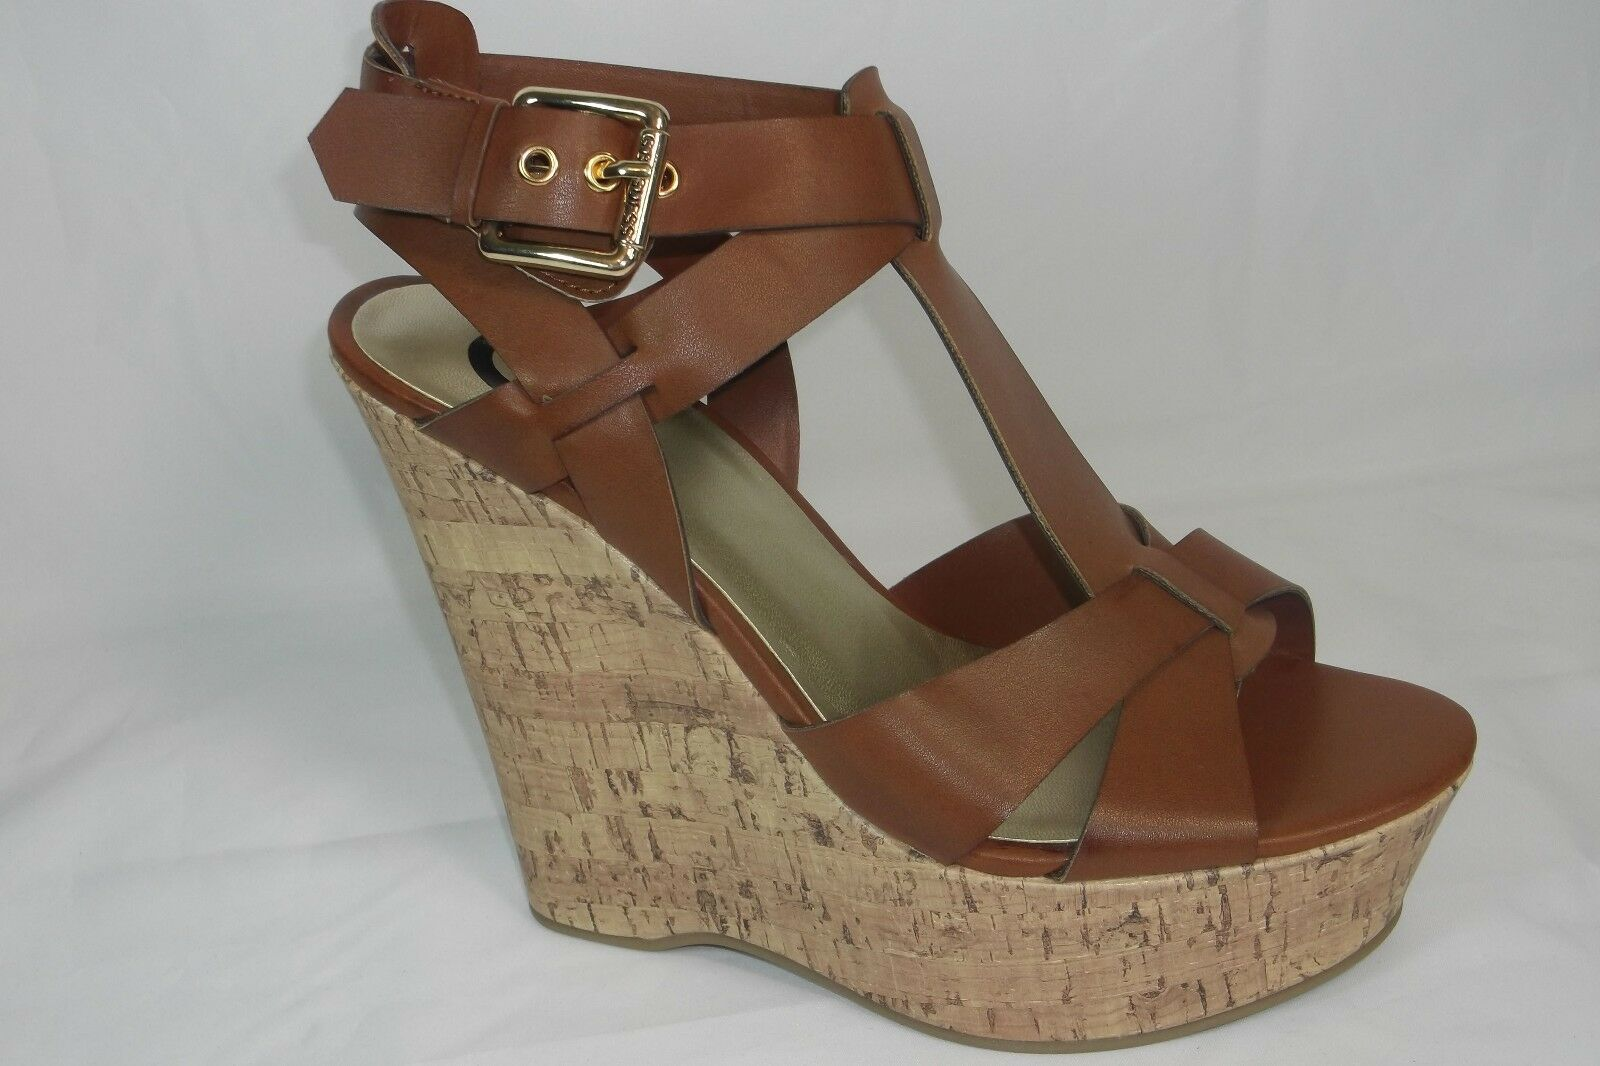 Guess G By Gg Entry brown Zeppa Sandali con Cinturino 9.5M Nuovo in Scatola